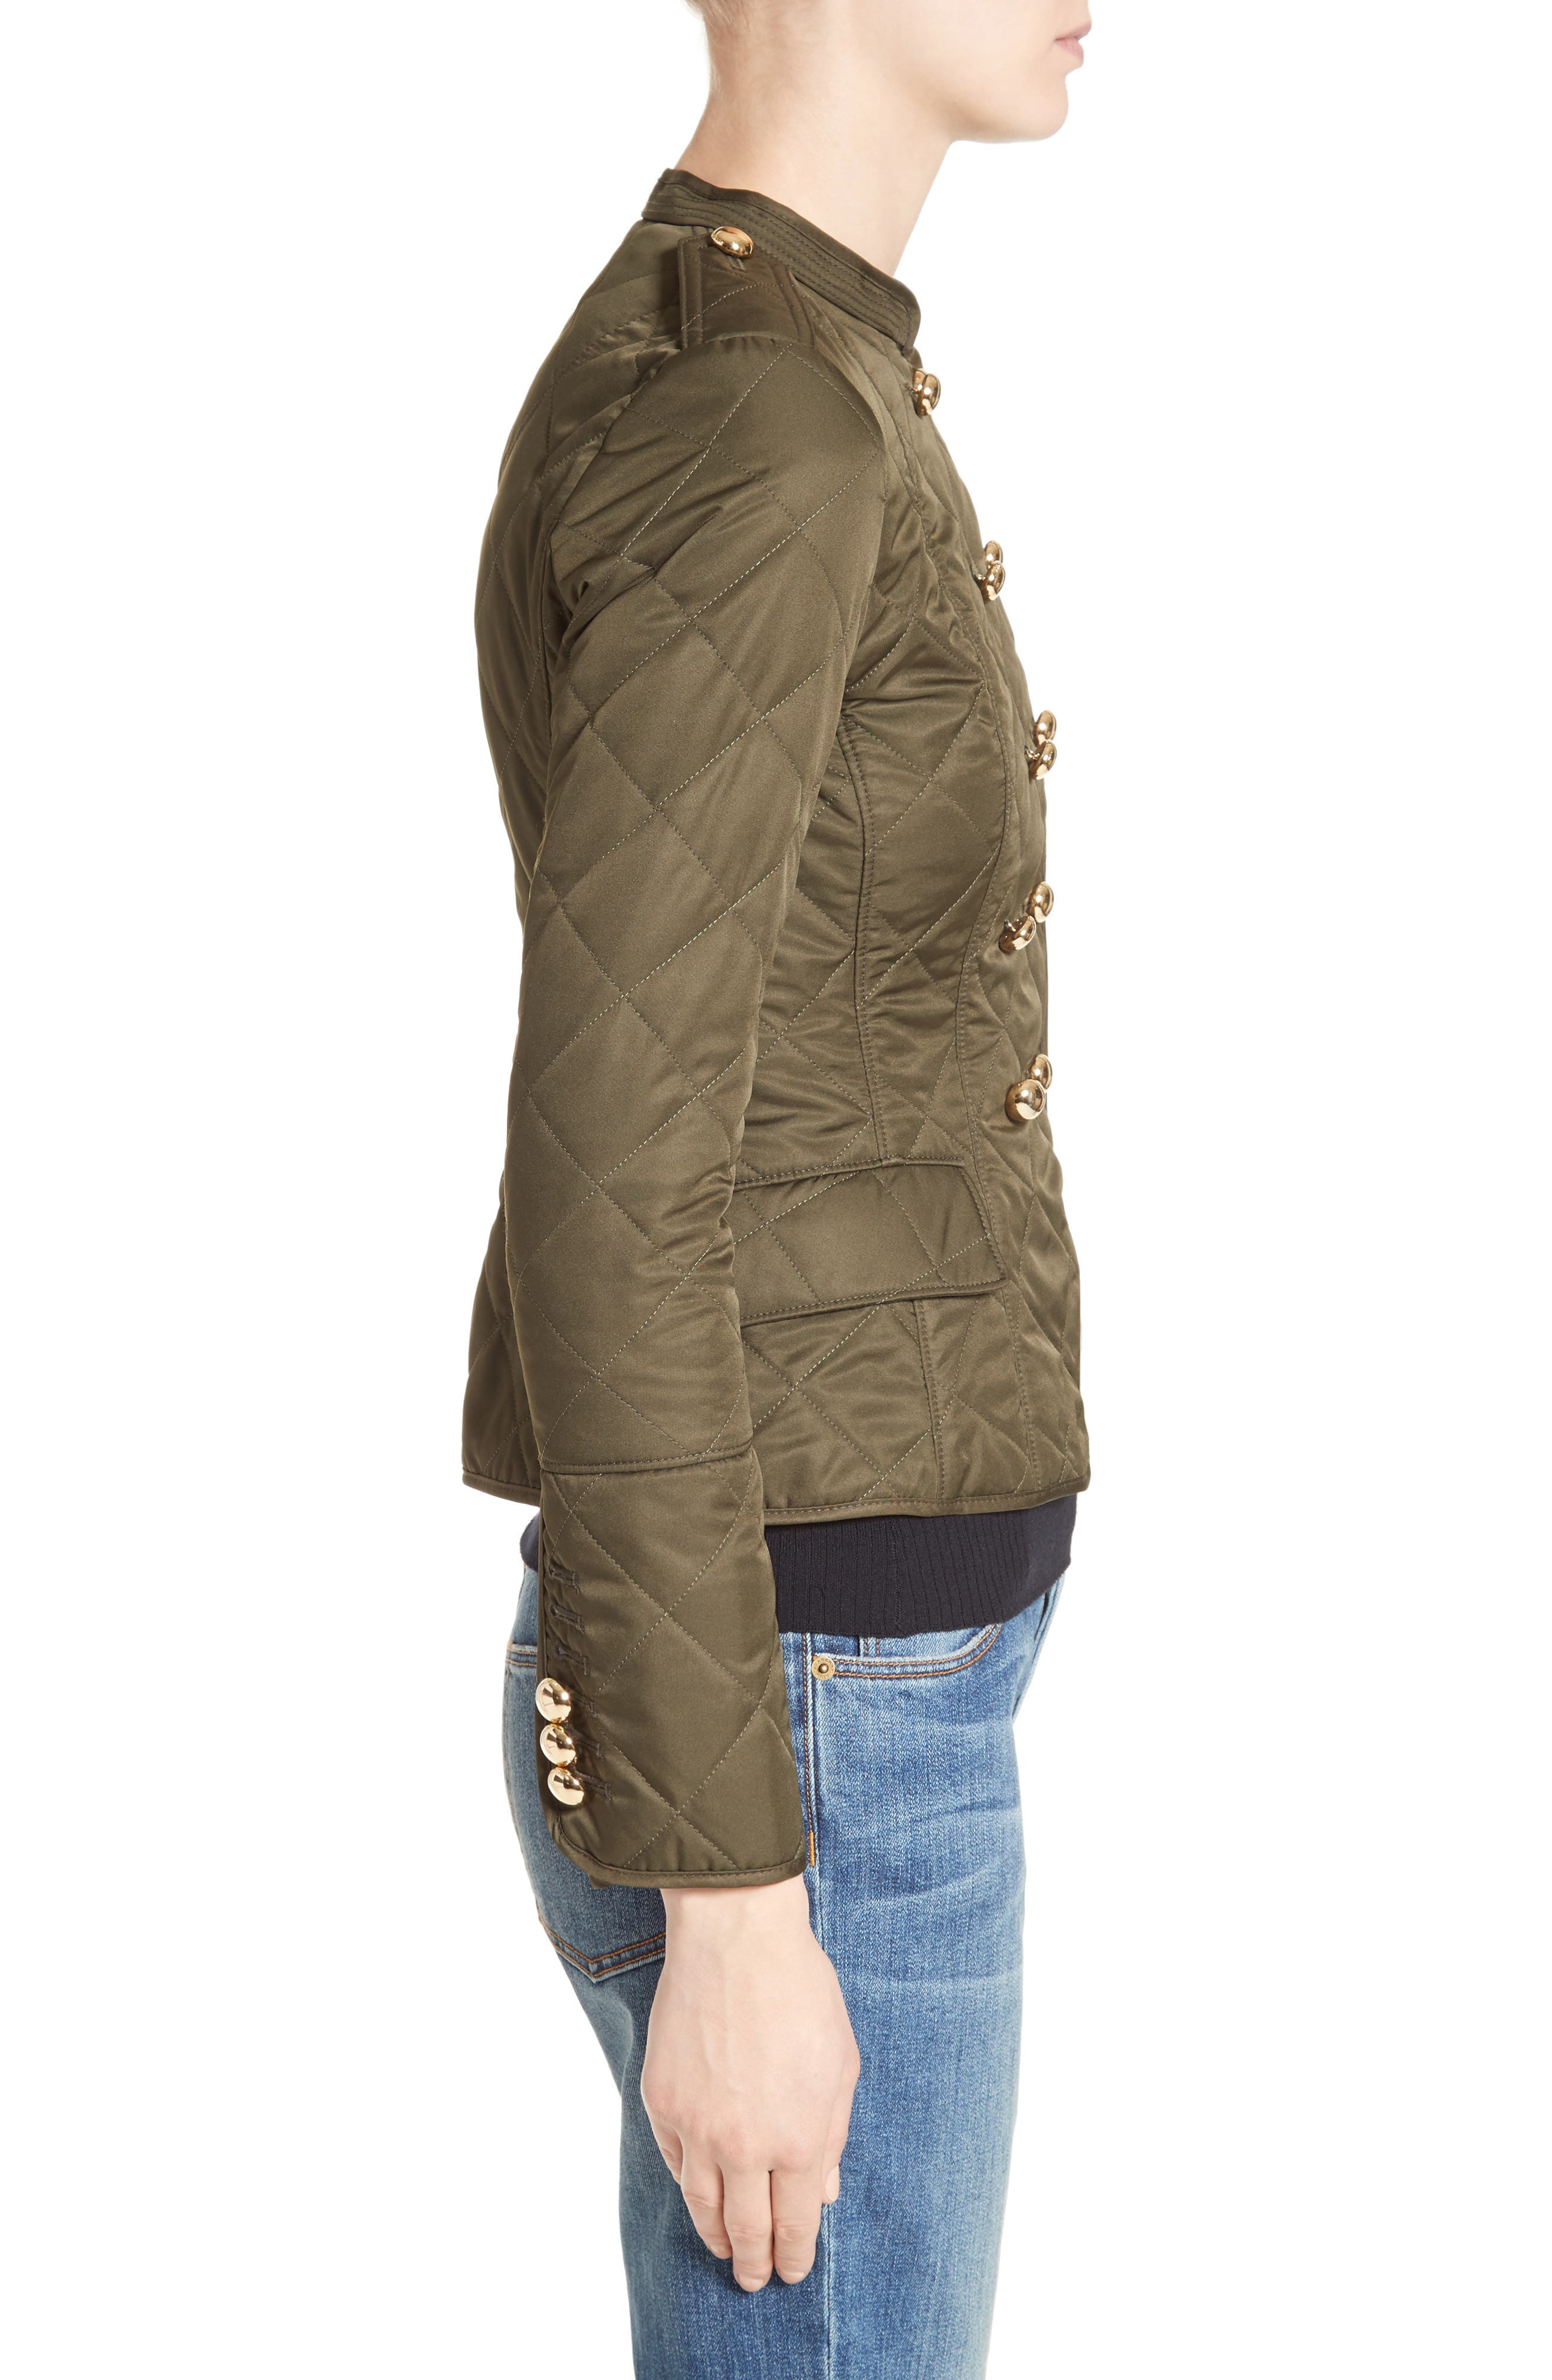 Boscastle Quilted Military Jacket,                             Alternate thumbnail 3, color,                             301